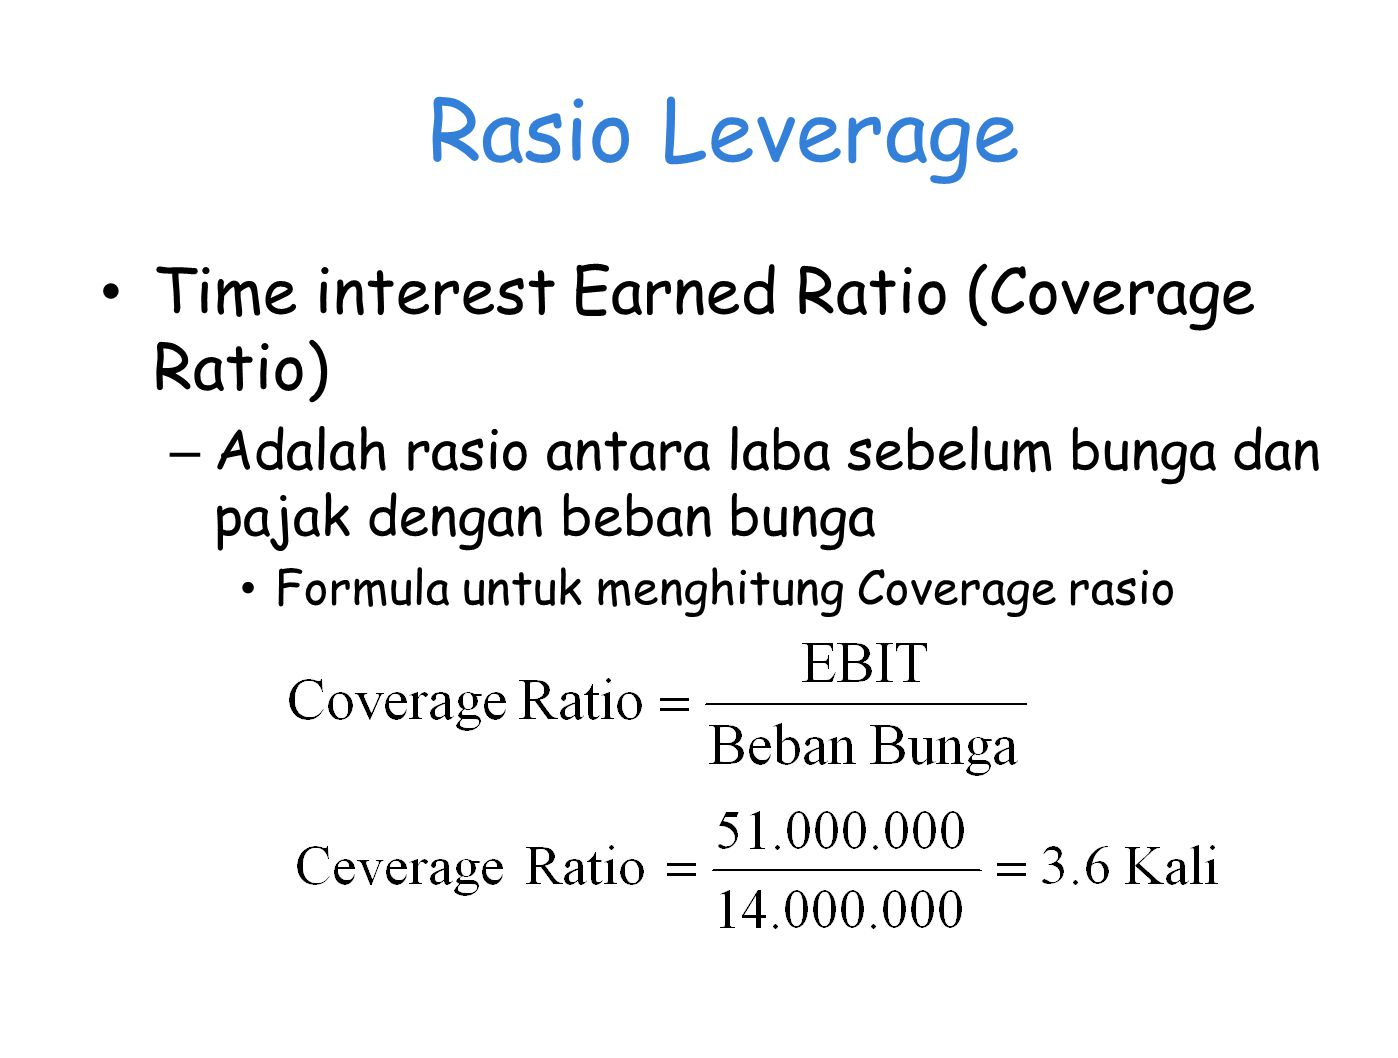 Rasio Leverage Time interest Earned Ratio (Coverage Ratio)